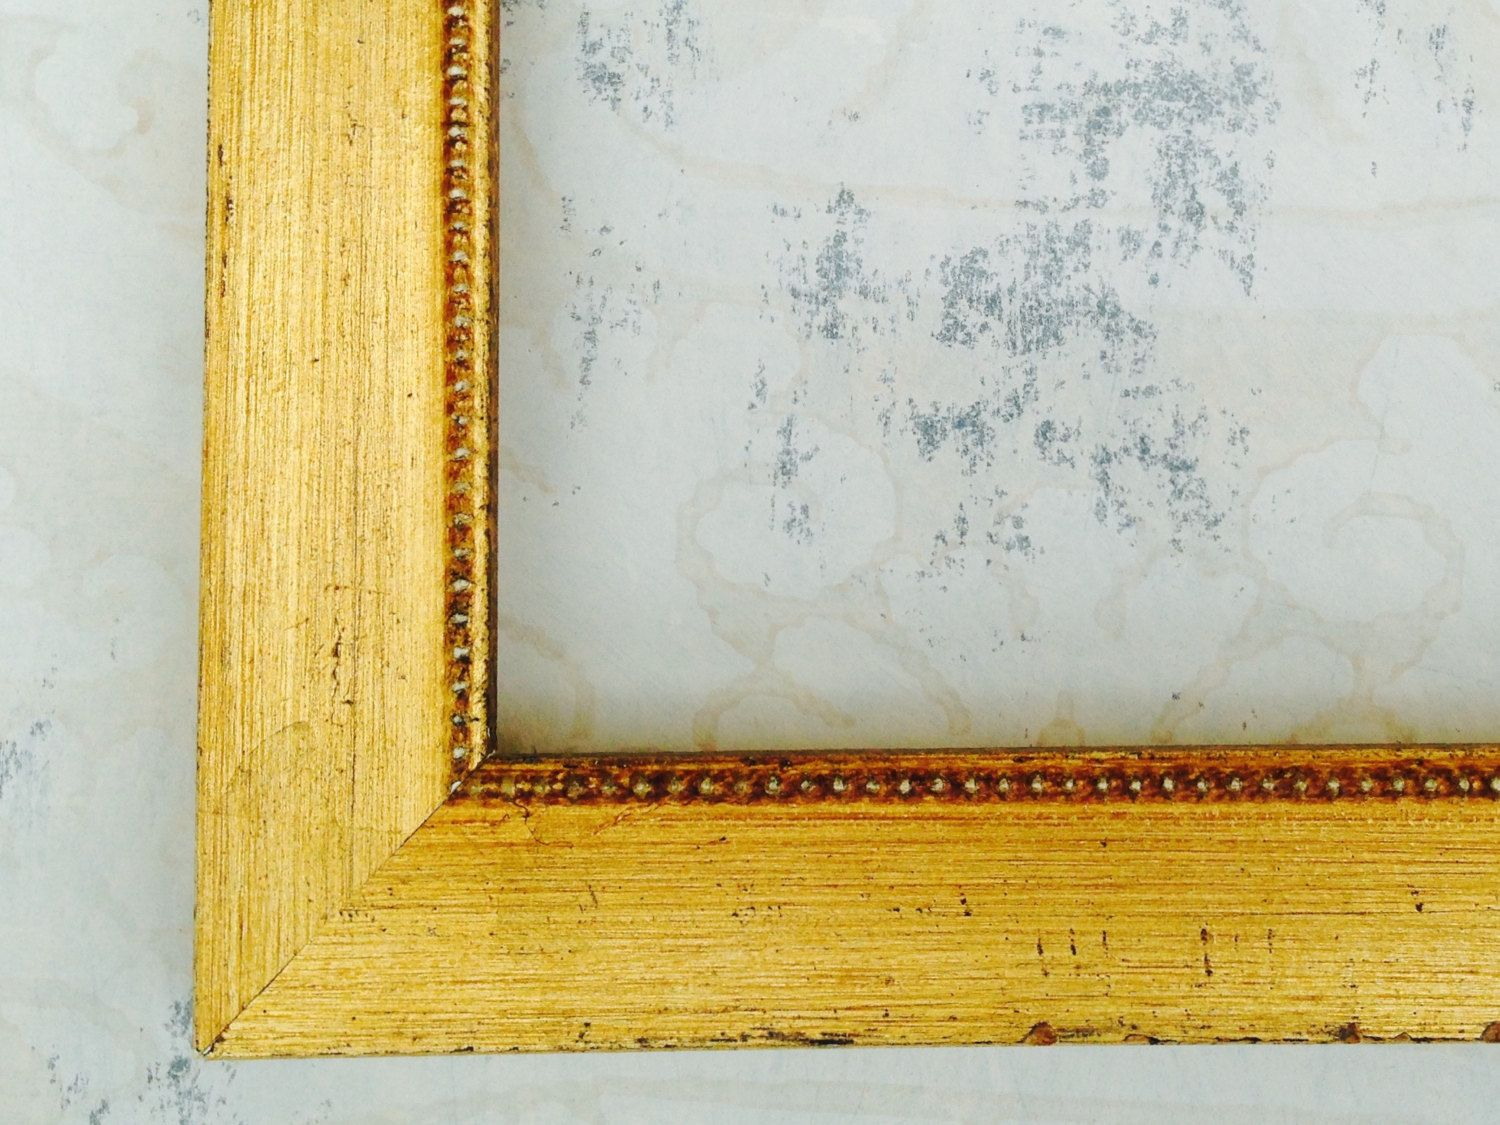 Shabby Chic Vintage Gold Picture Frame - 4x4, 4x6, 5x7, 8x8, 8x10 ...